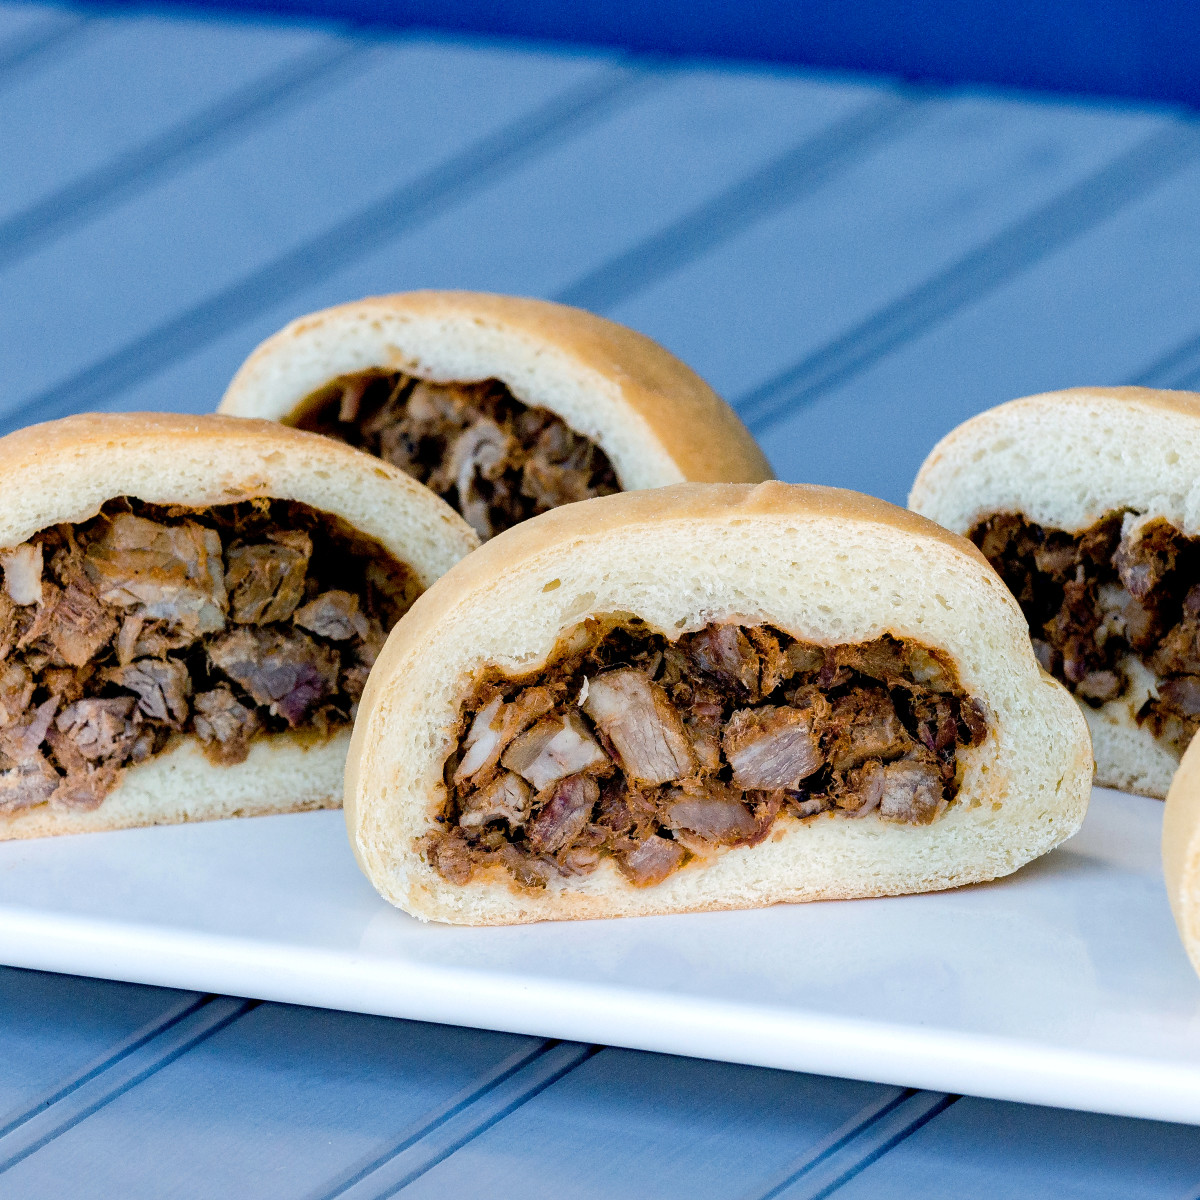 Houston, Kolache Shoppe The Heights, June 2017, brisket kolaches